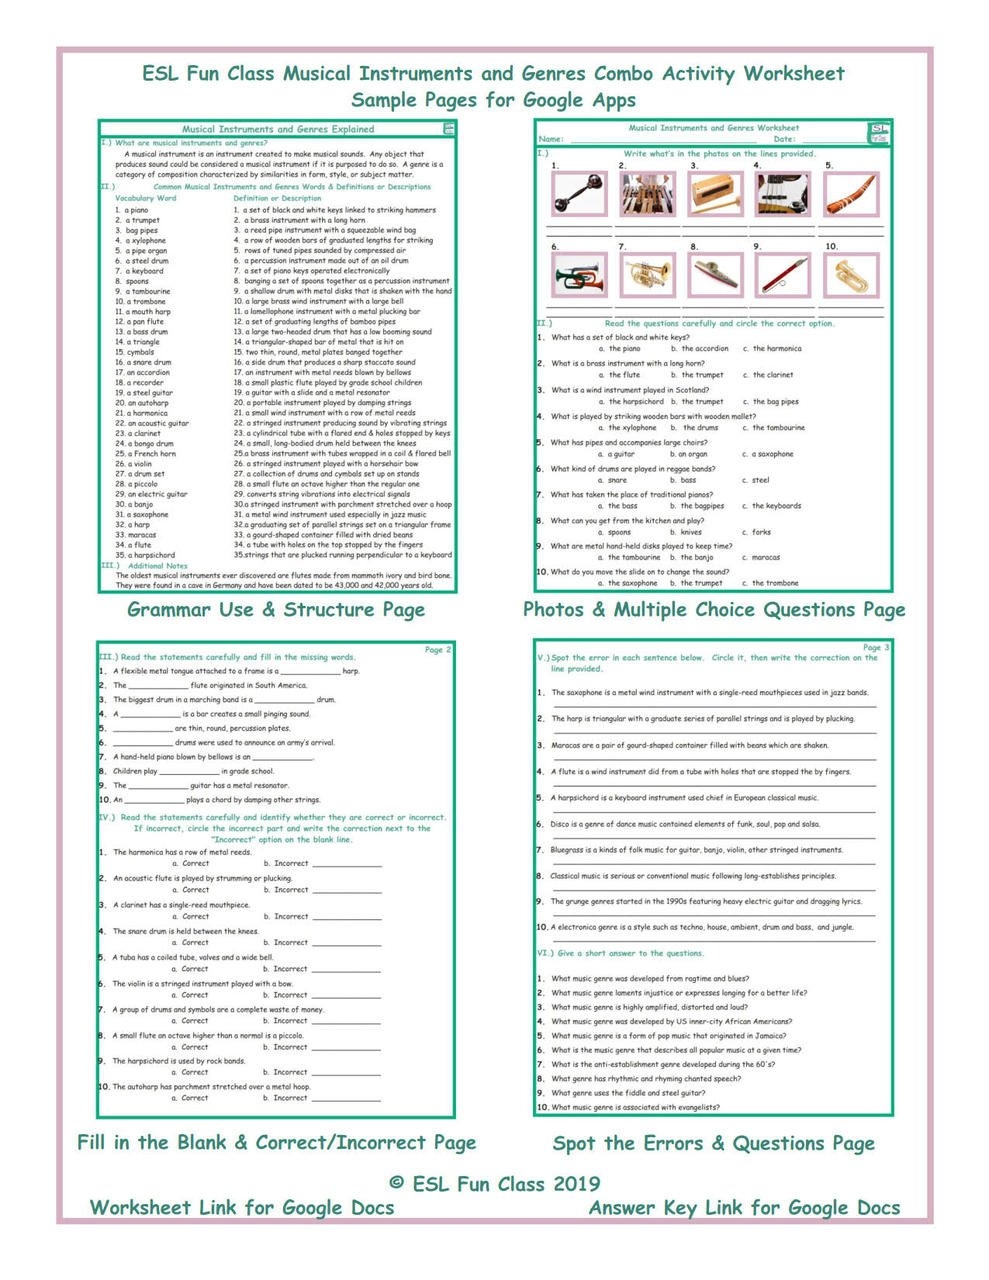 Genre Worksheets 4th Grade Musical Instruments and Genres Interactive Worksheets for Google Apps Links